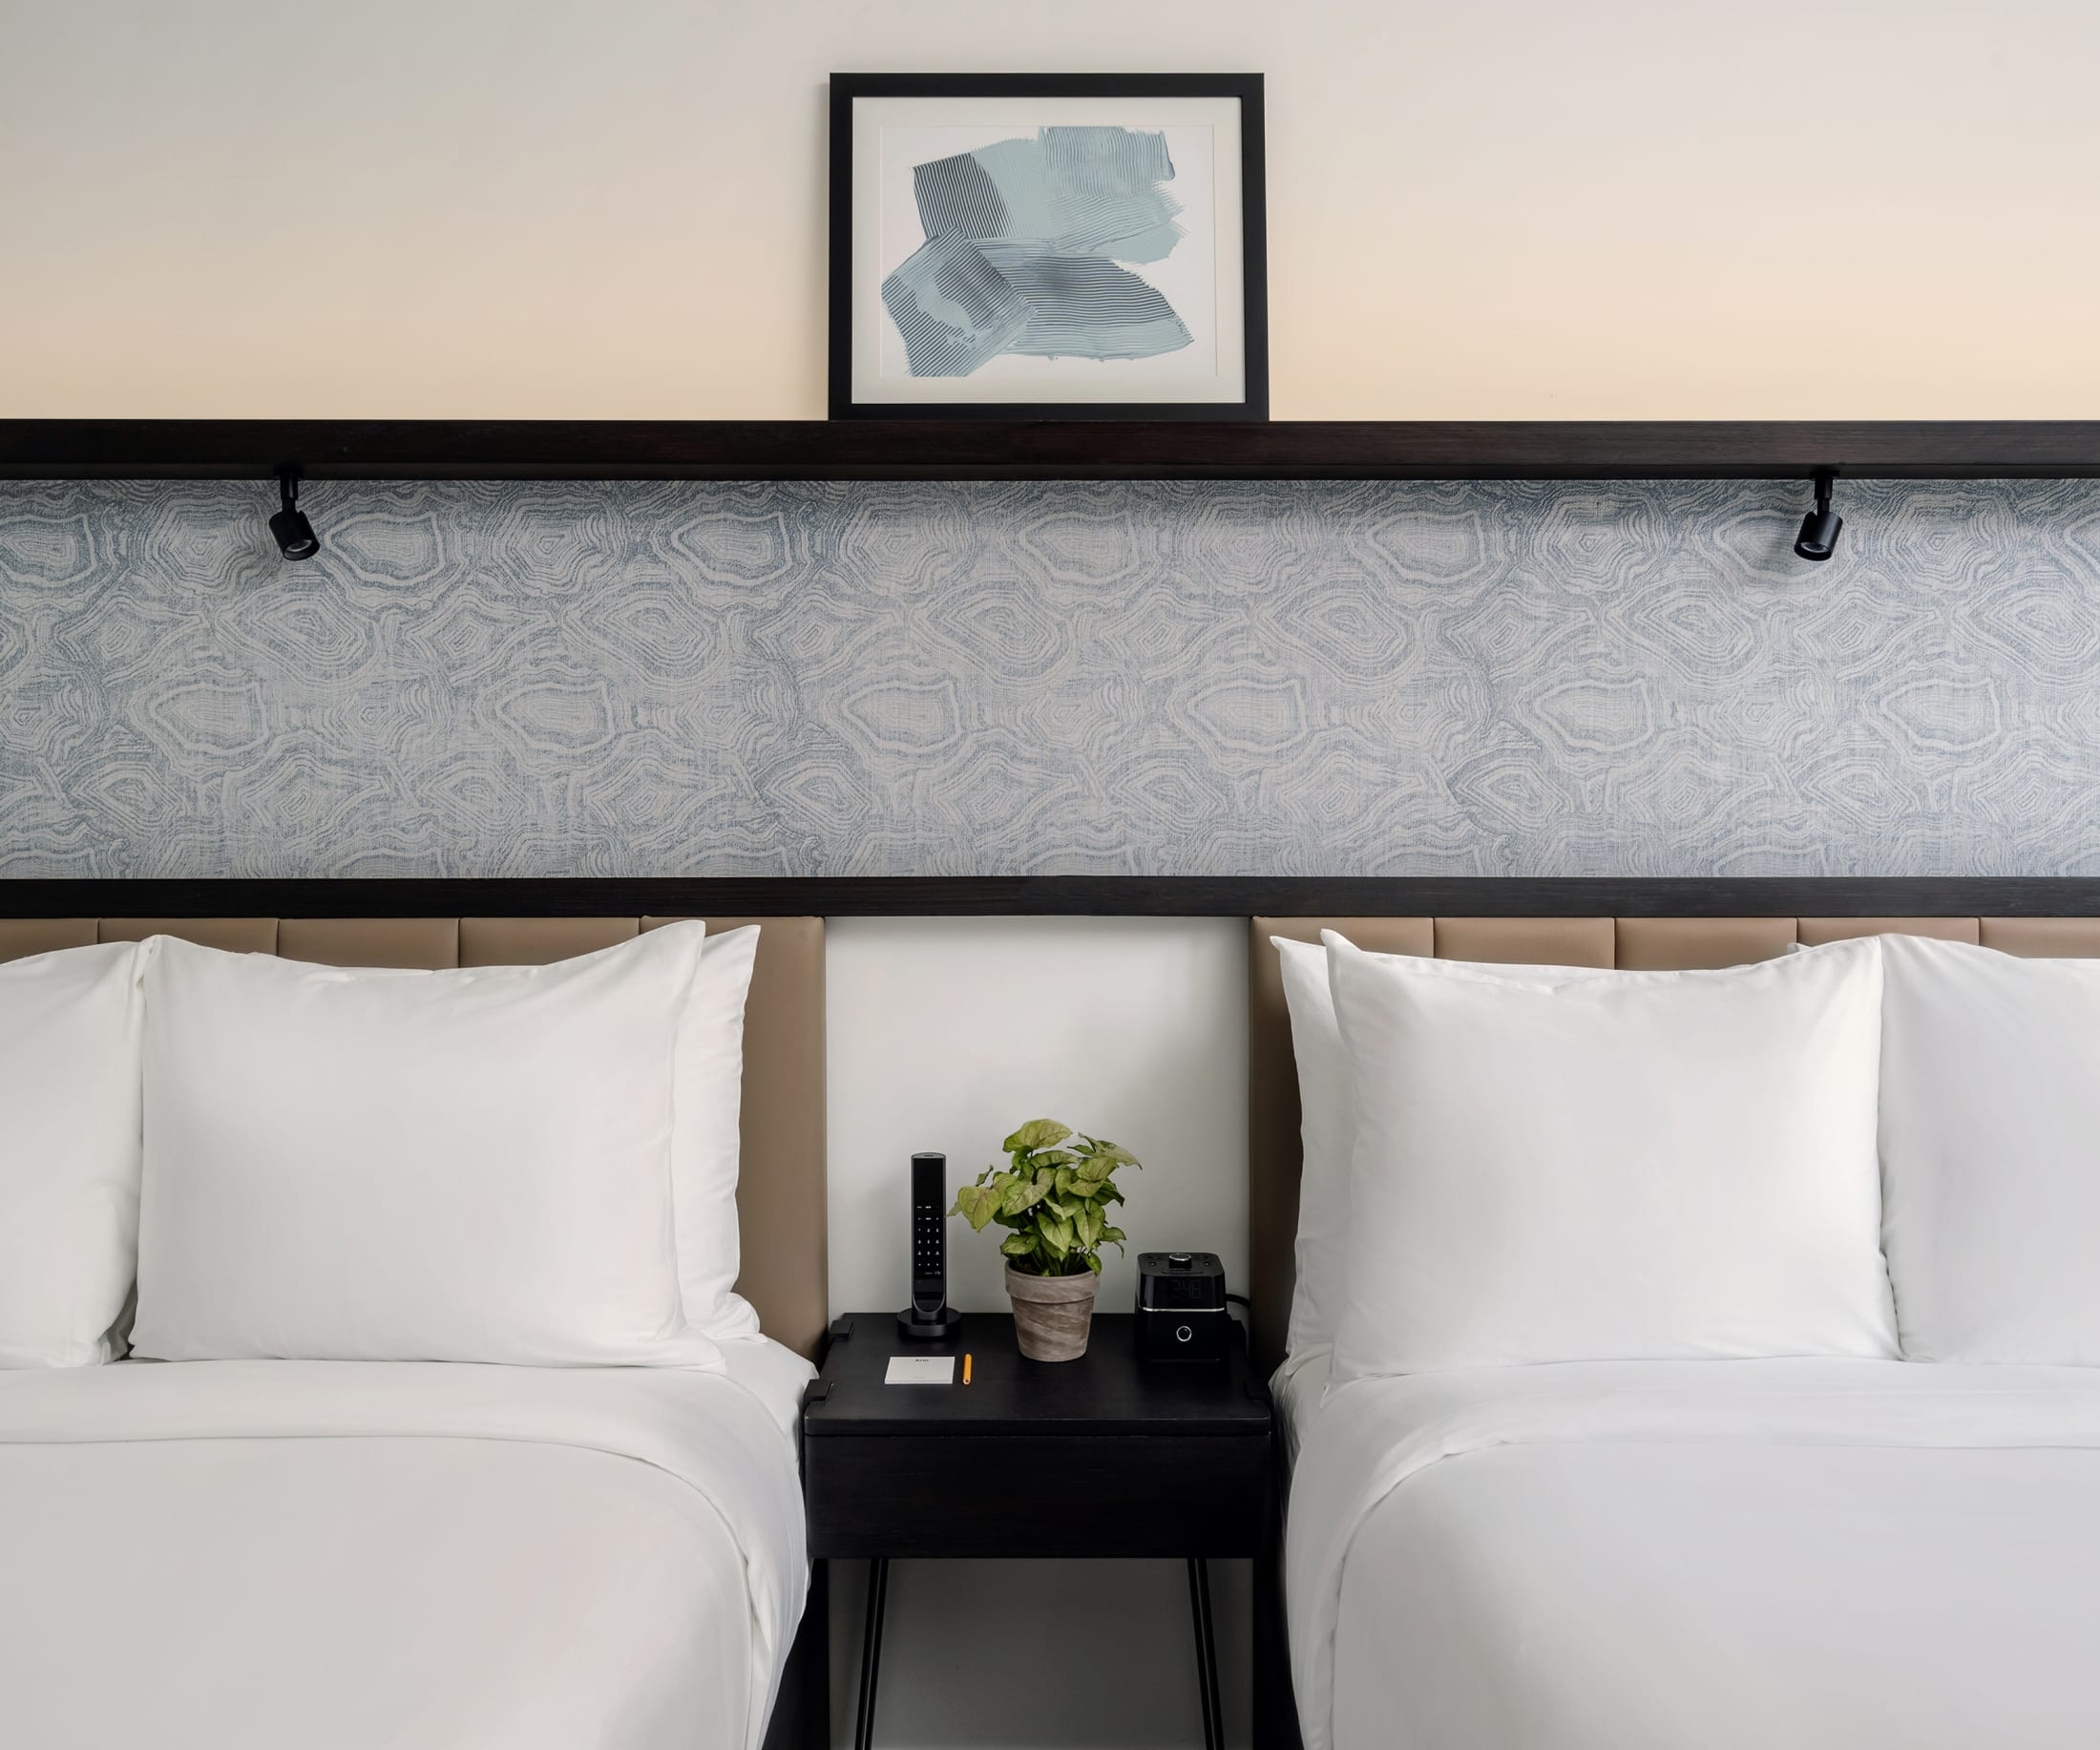 Two beds side by side in Midtown guestroom with painting in the center and a night stand in the center